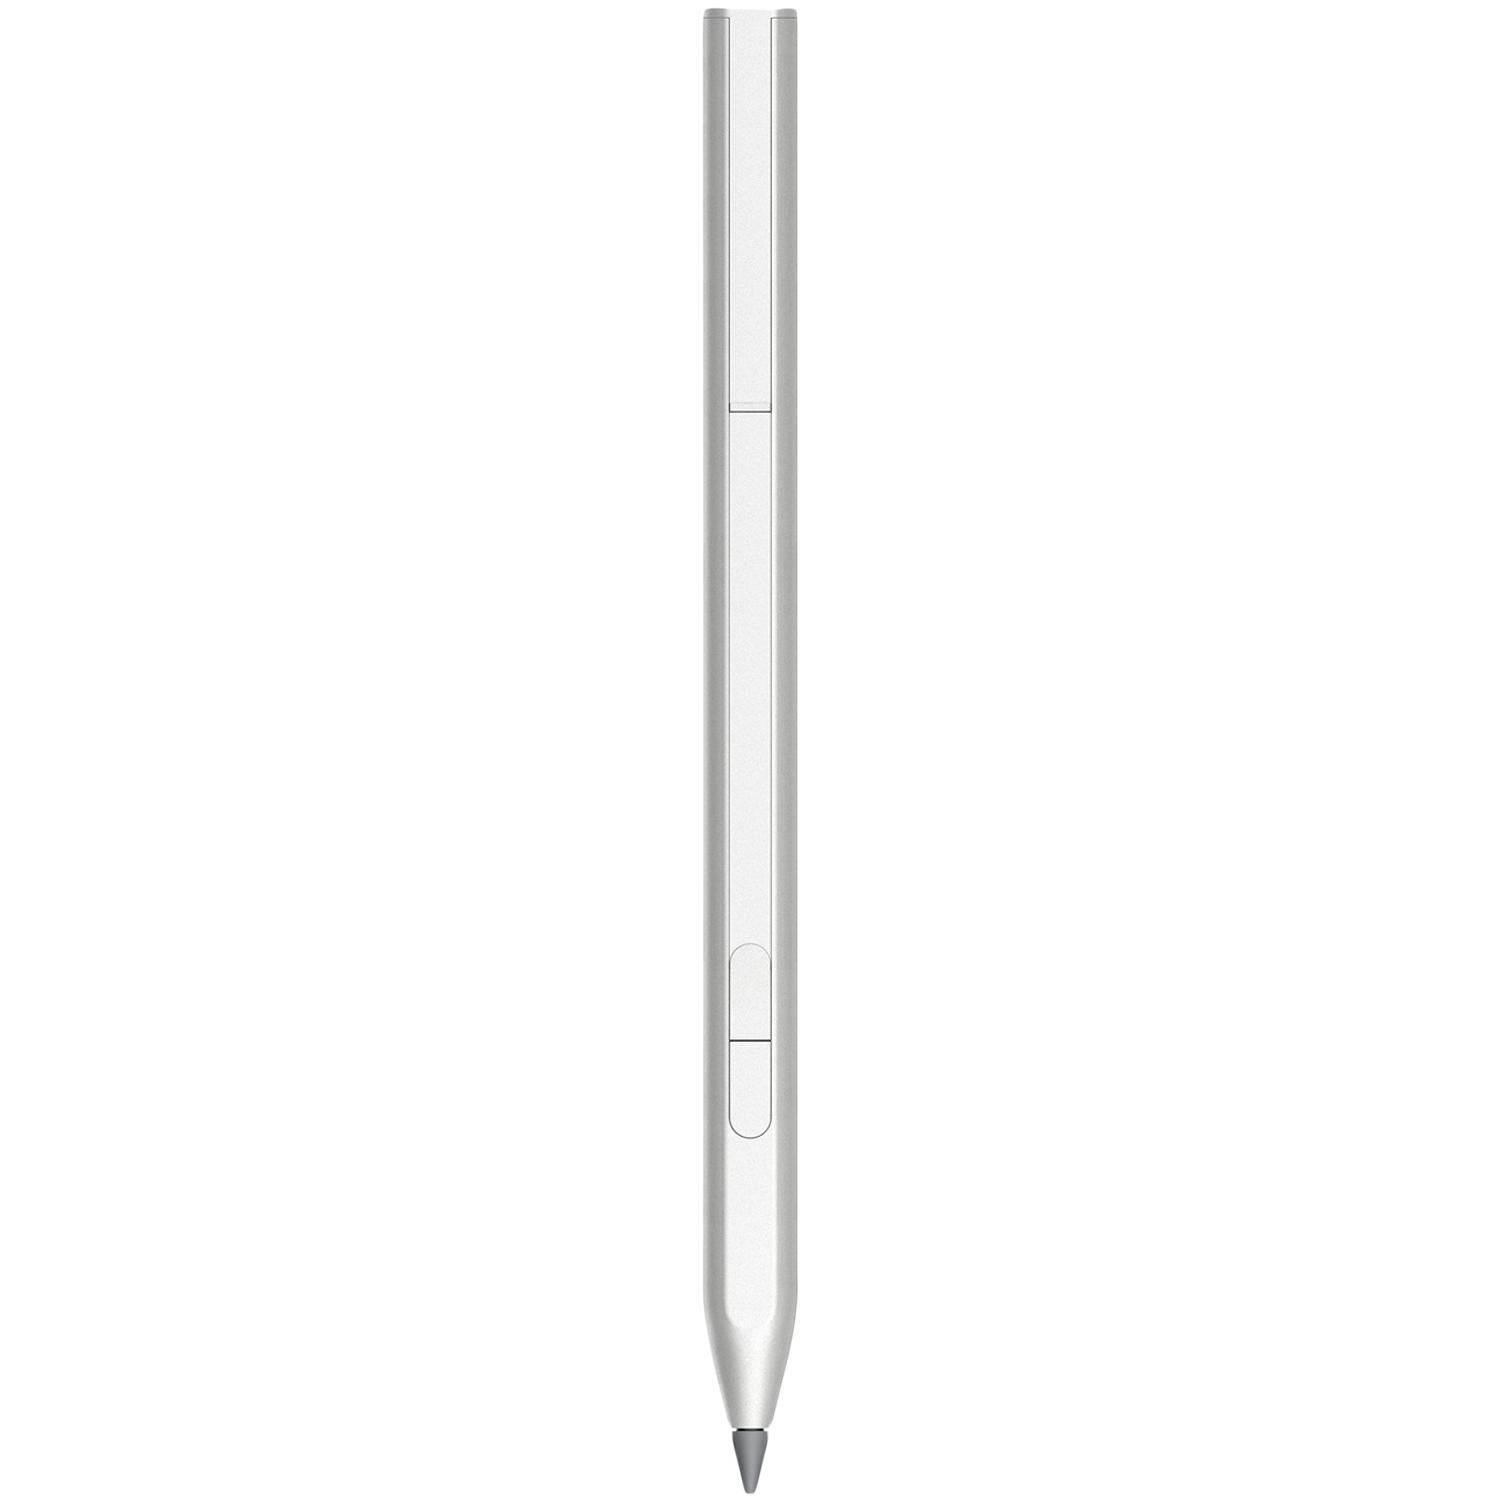 HP 9G MPP 2.0 Pen For Laptop (Rechargeable, 3J123AA, Pike Silver)_1